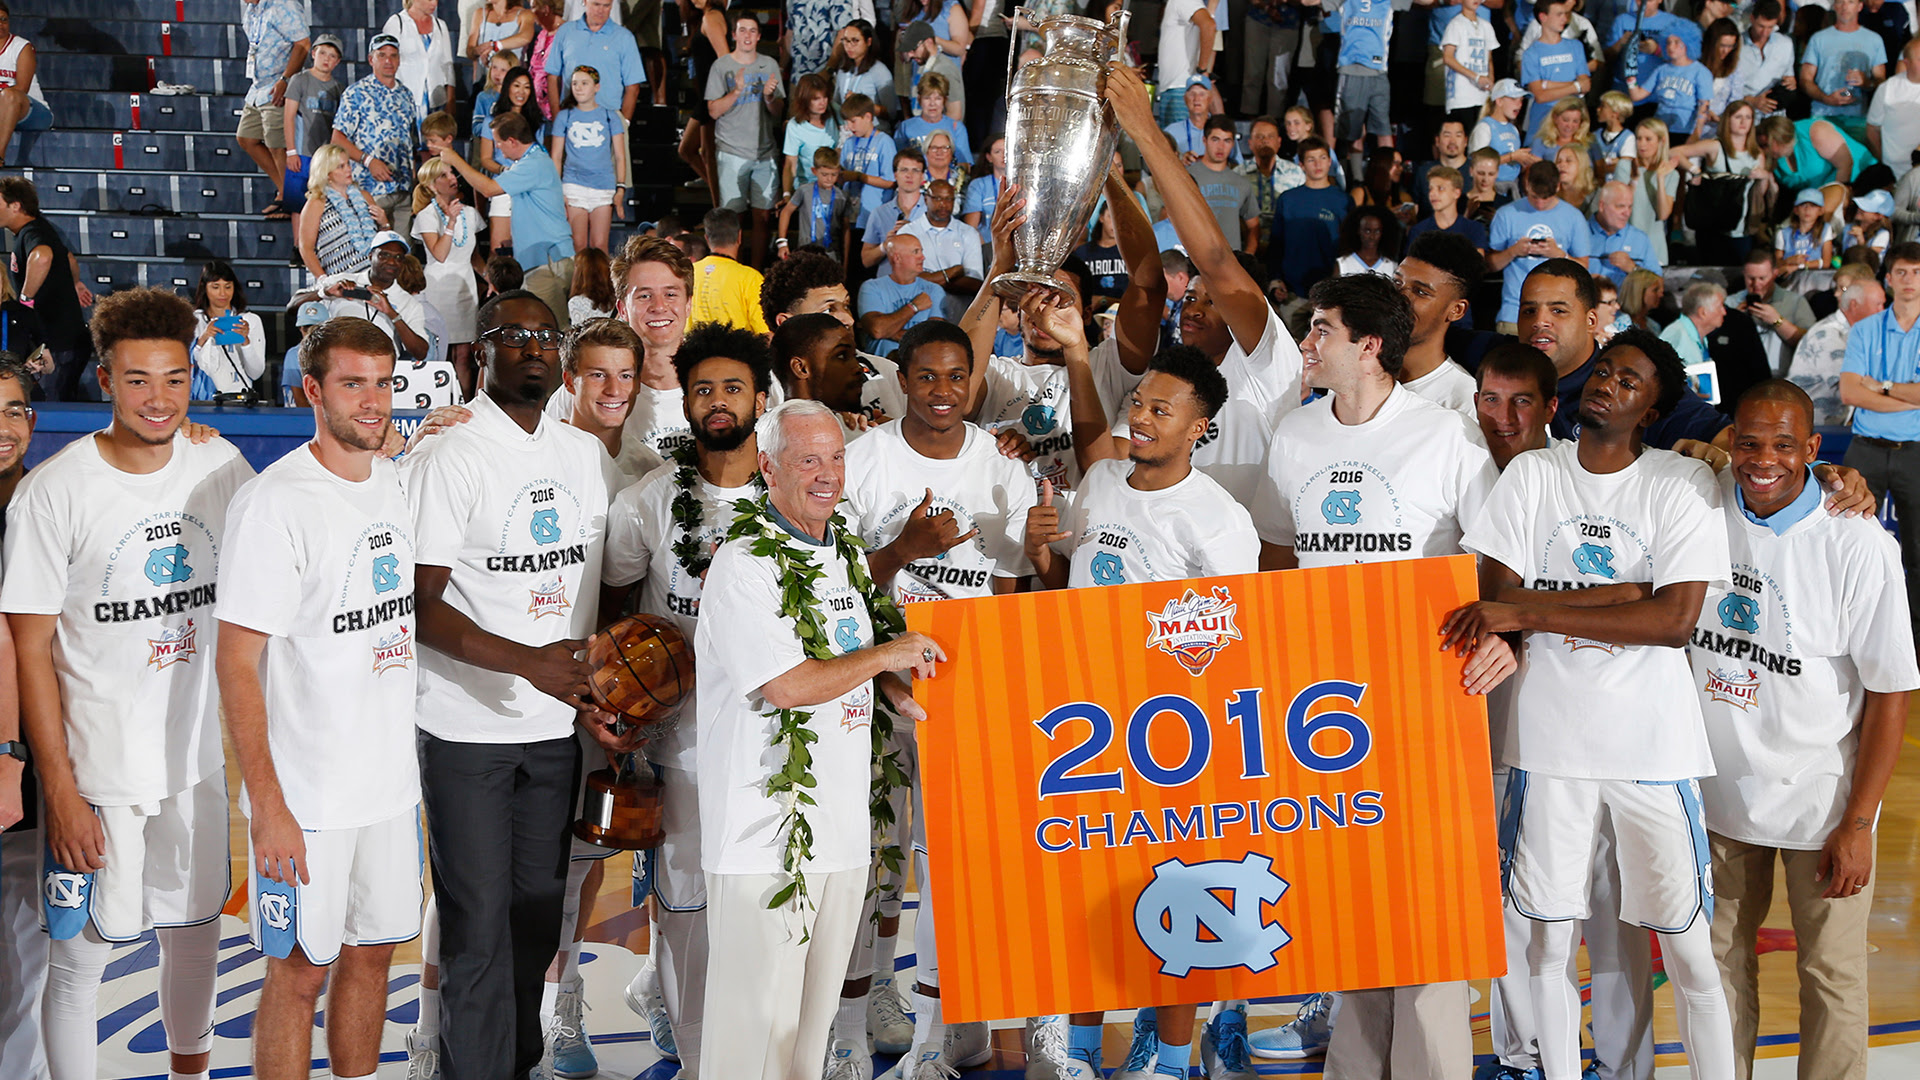 2016 Maui Jim Maui Invitational Champions. PC: Maui Invitational.